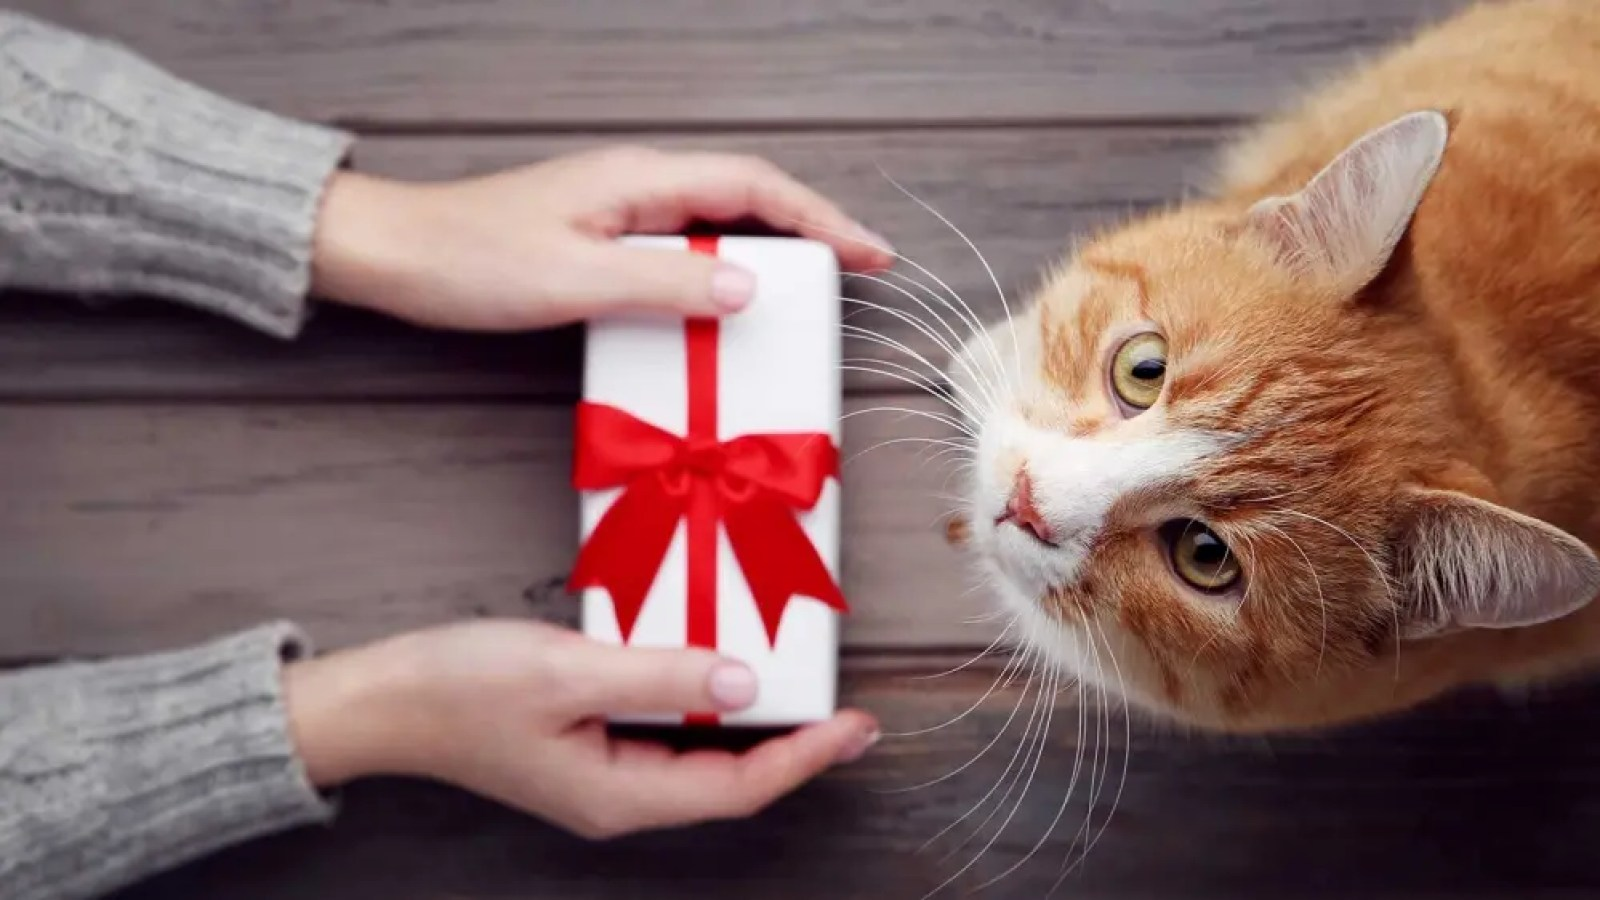 A woman holding a wrapped gift out to a cute orange and white cat.